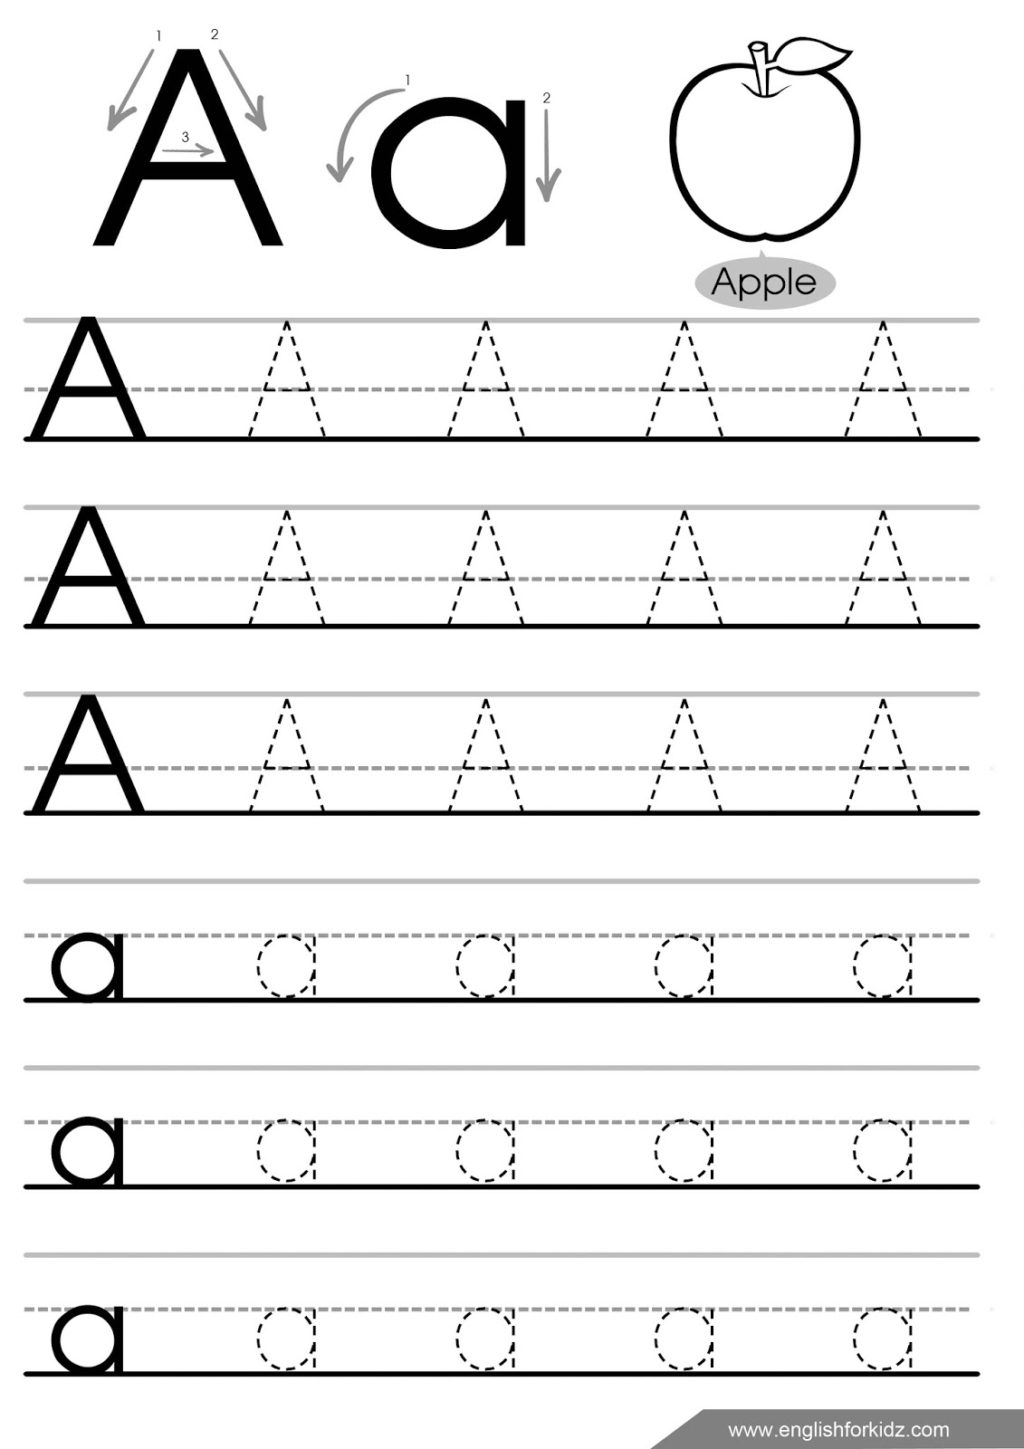 Worksheet ~ Worksheet Letter Tracing Worksheets Letters J intended for Letter Tracing J